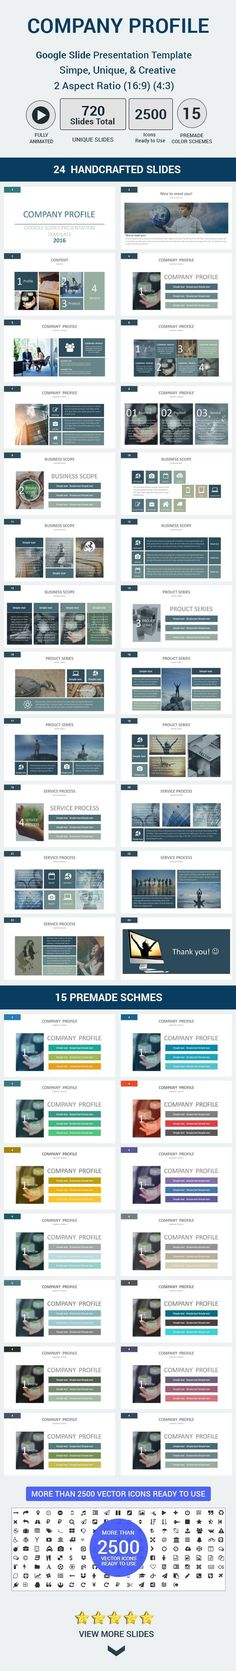 Free 38 Pages Company Profile Template - Smashfreakz Design - free company profiles template